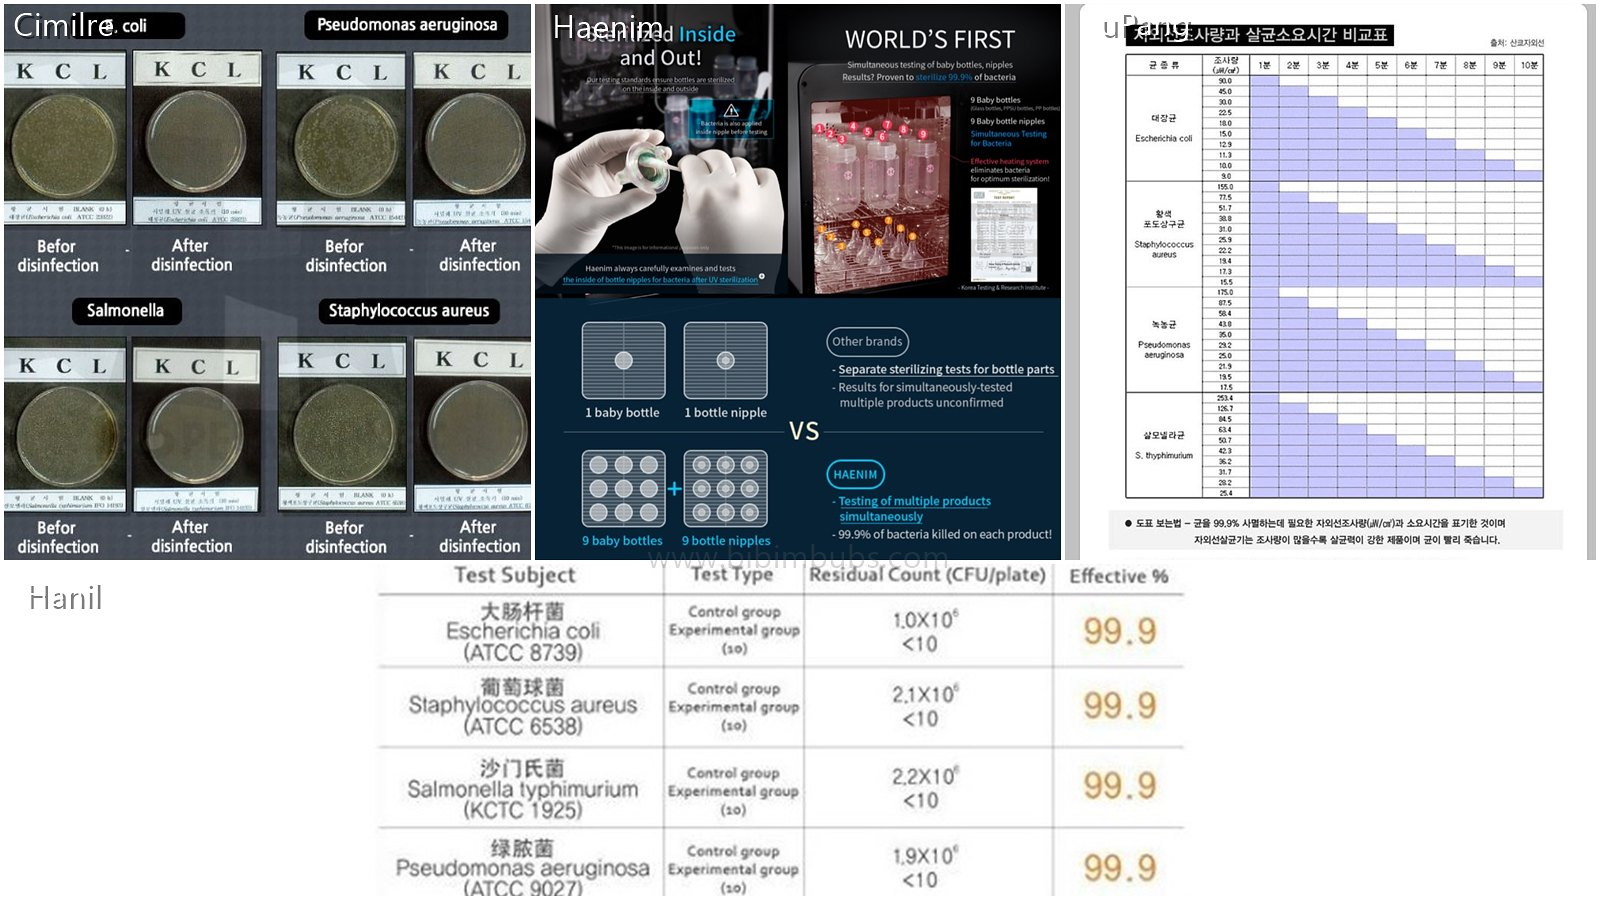 Uv Steriliser Comparison Cimilre Vs Haenim Hanil Upang Pump Parts Body Connector All Brands Report 999 Sterilising Efficacy With Their Lab Tests And I Should Think So Because The Part Depends On Lamps From Osram Or